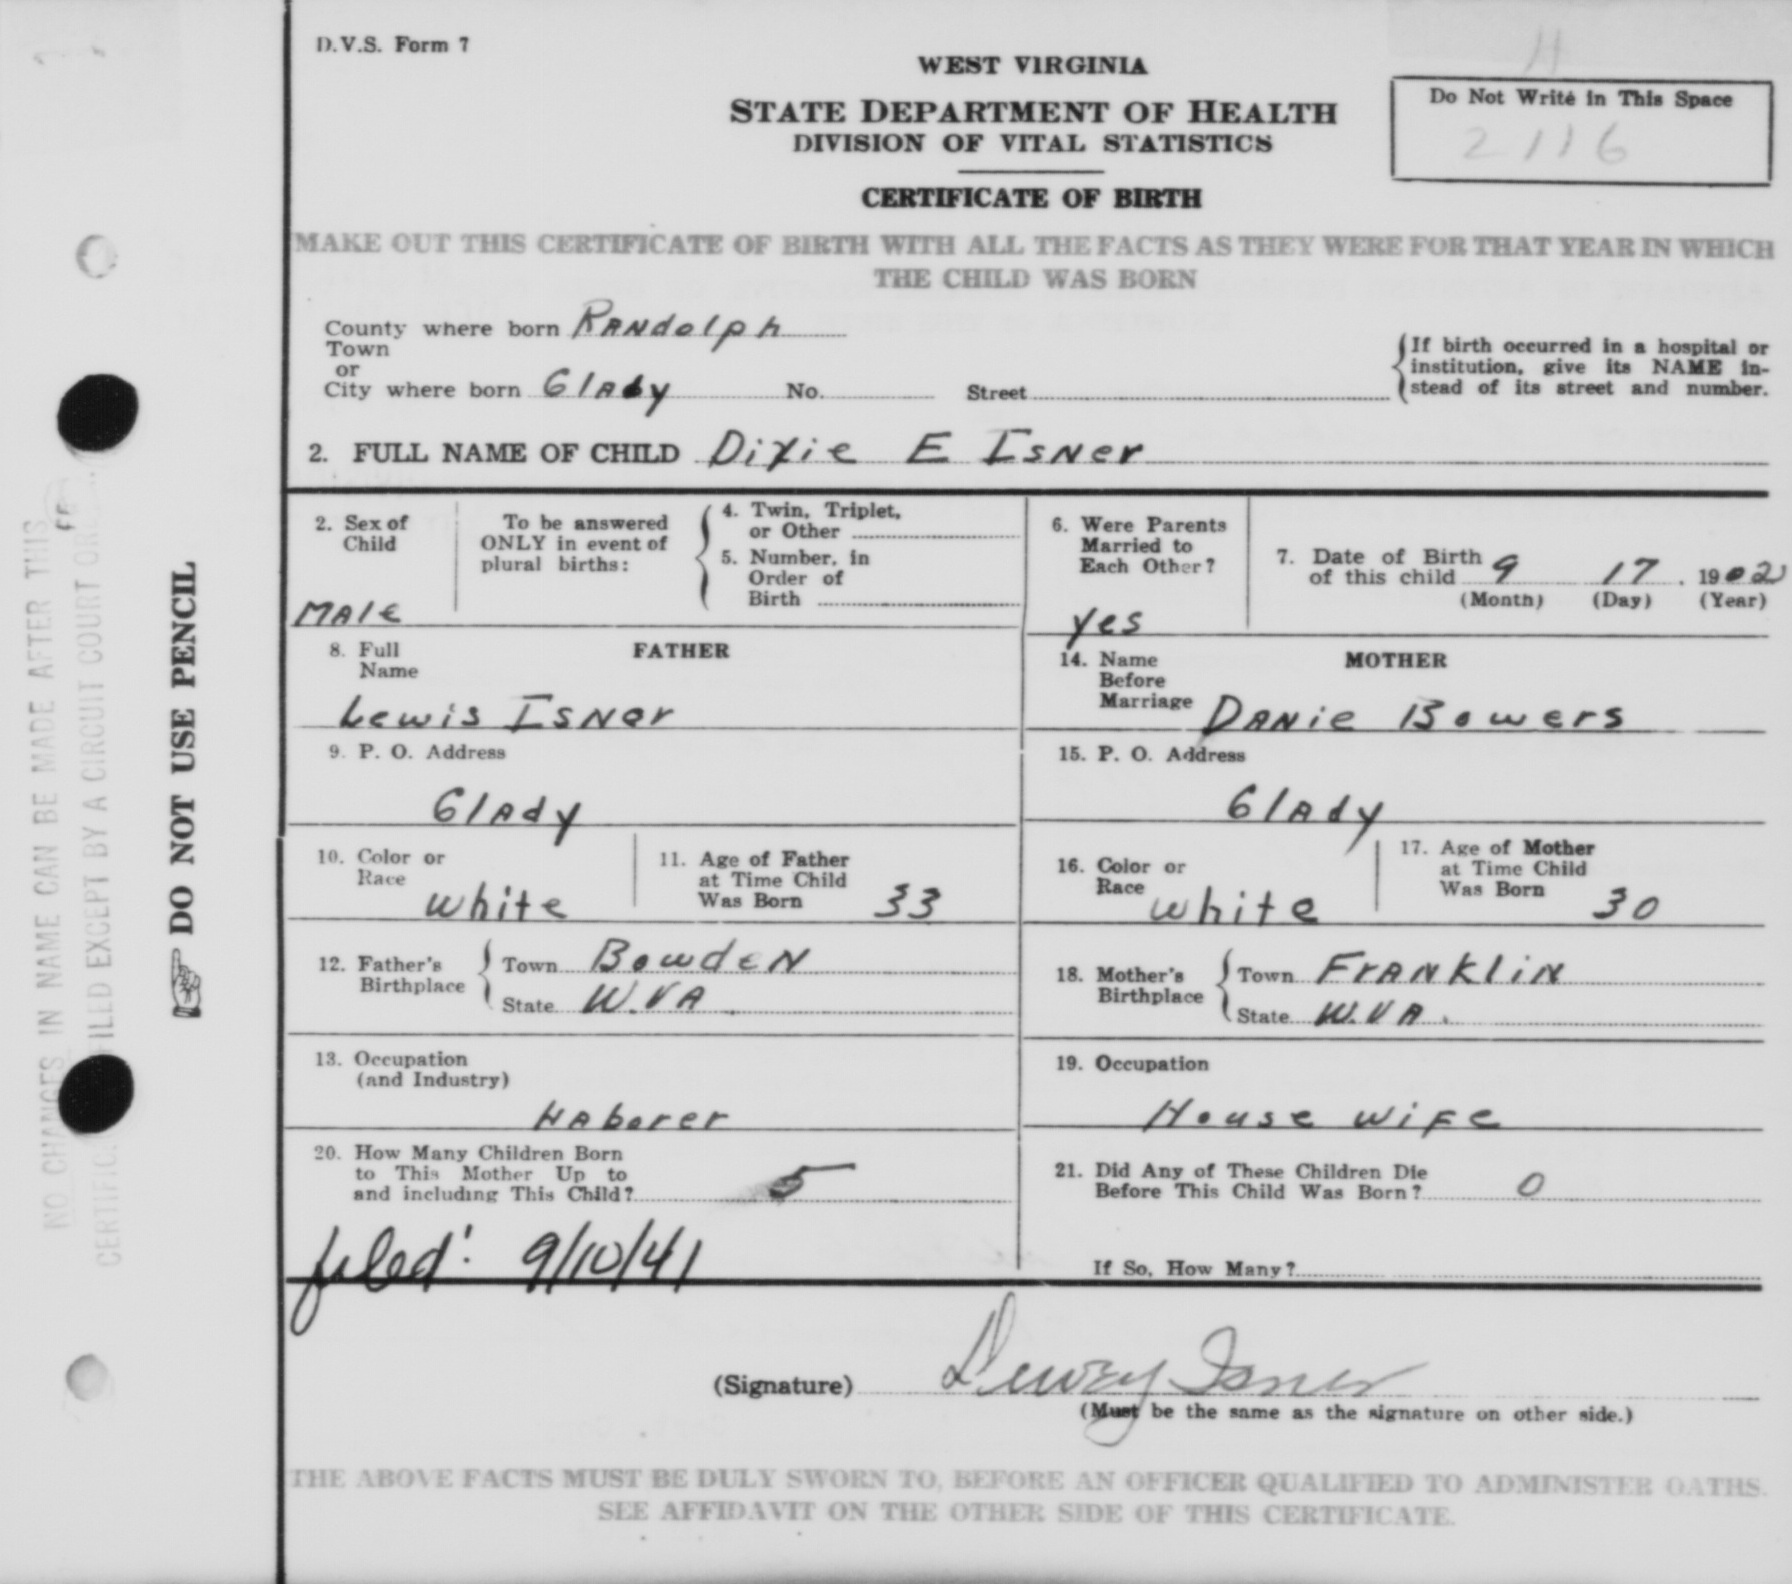 Jefferson isner marriages and children lewis isner birth certificate for dixie e isner xflitez Images